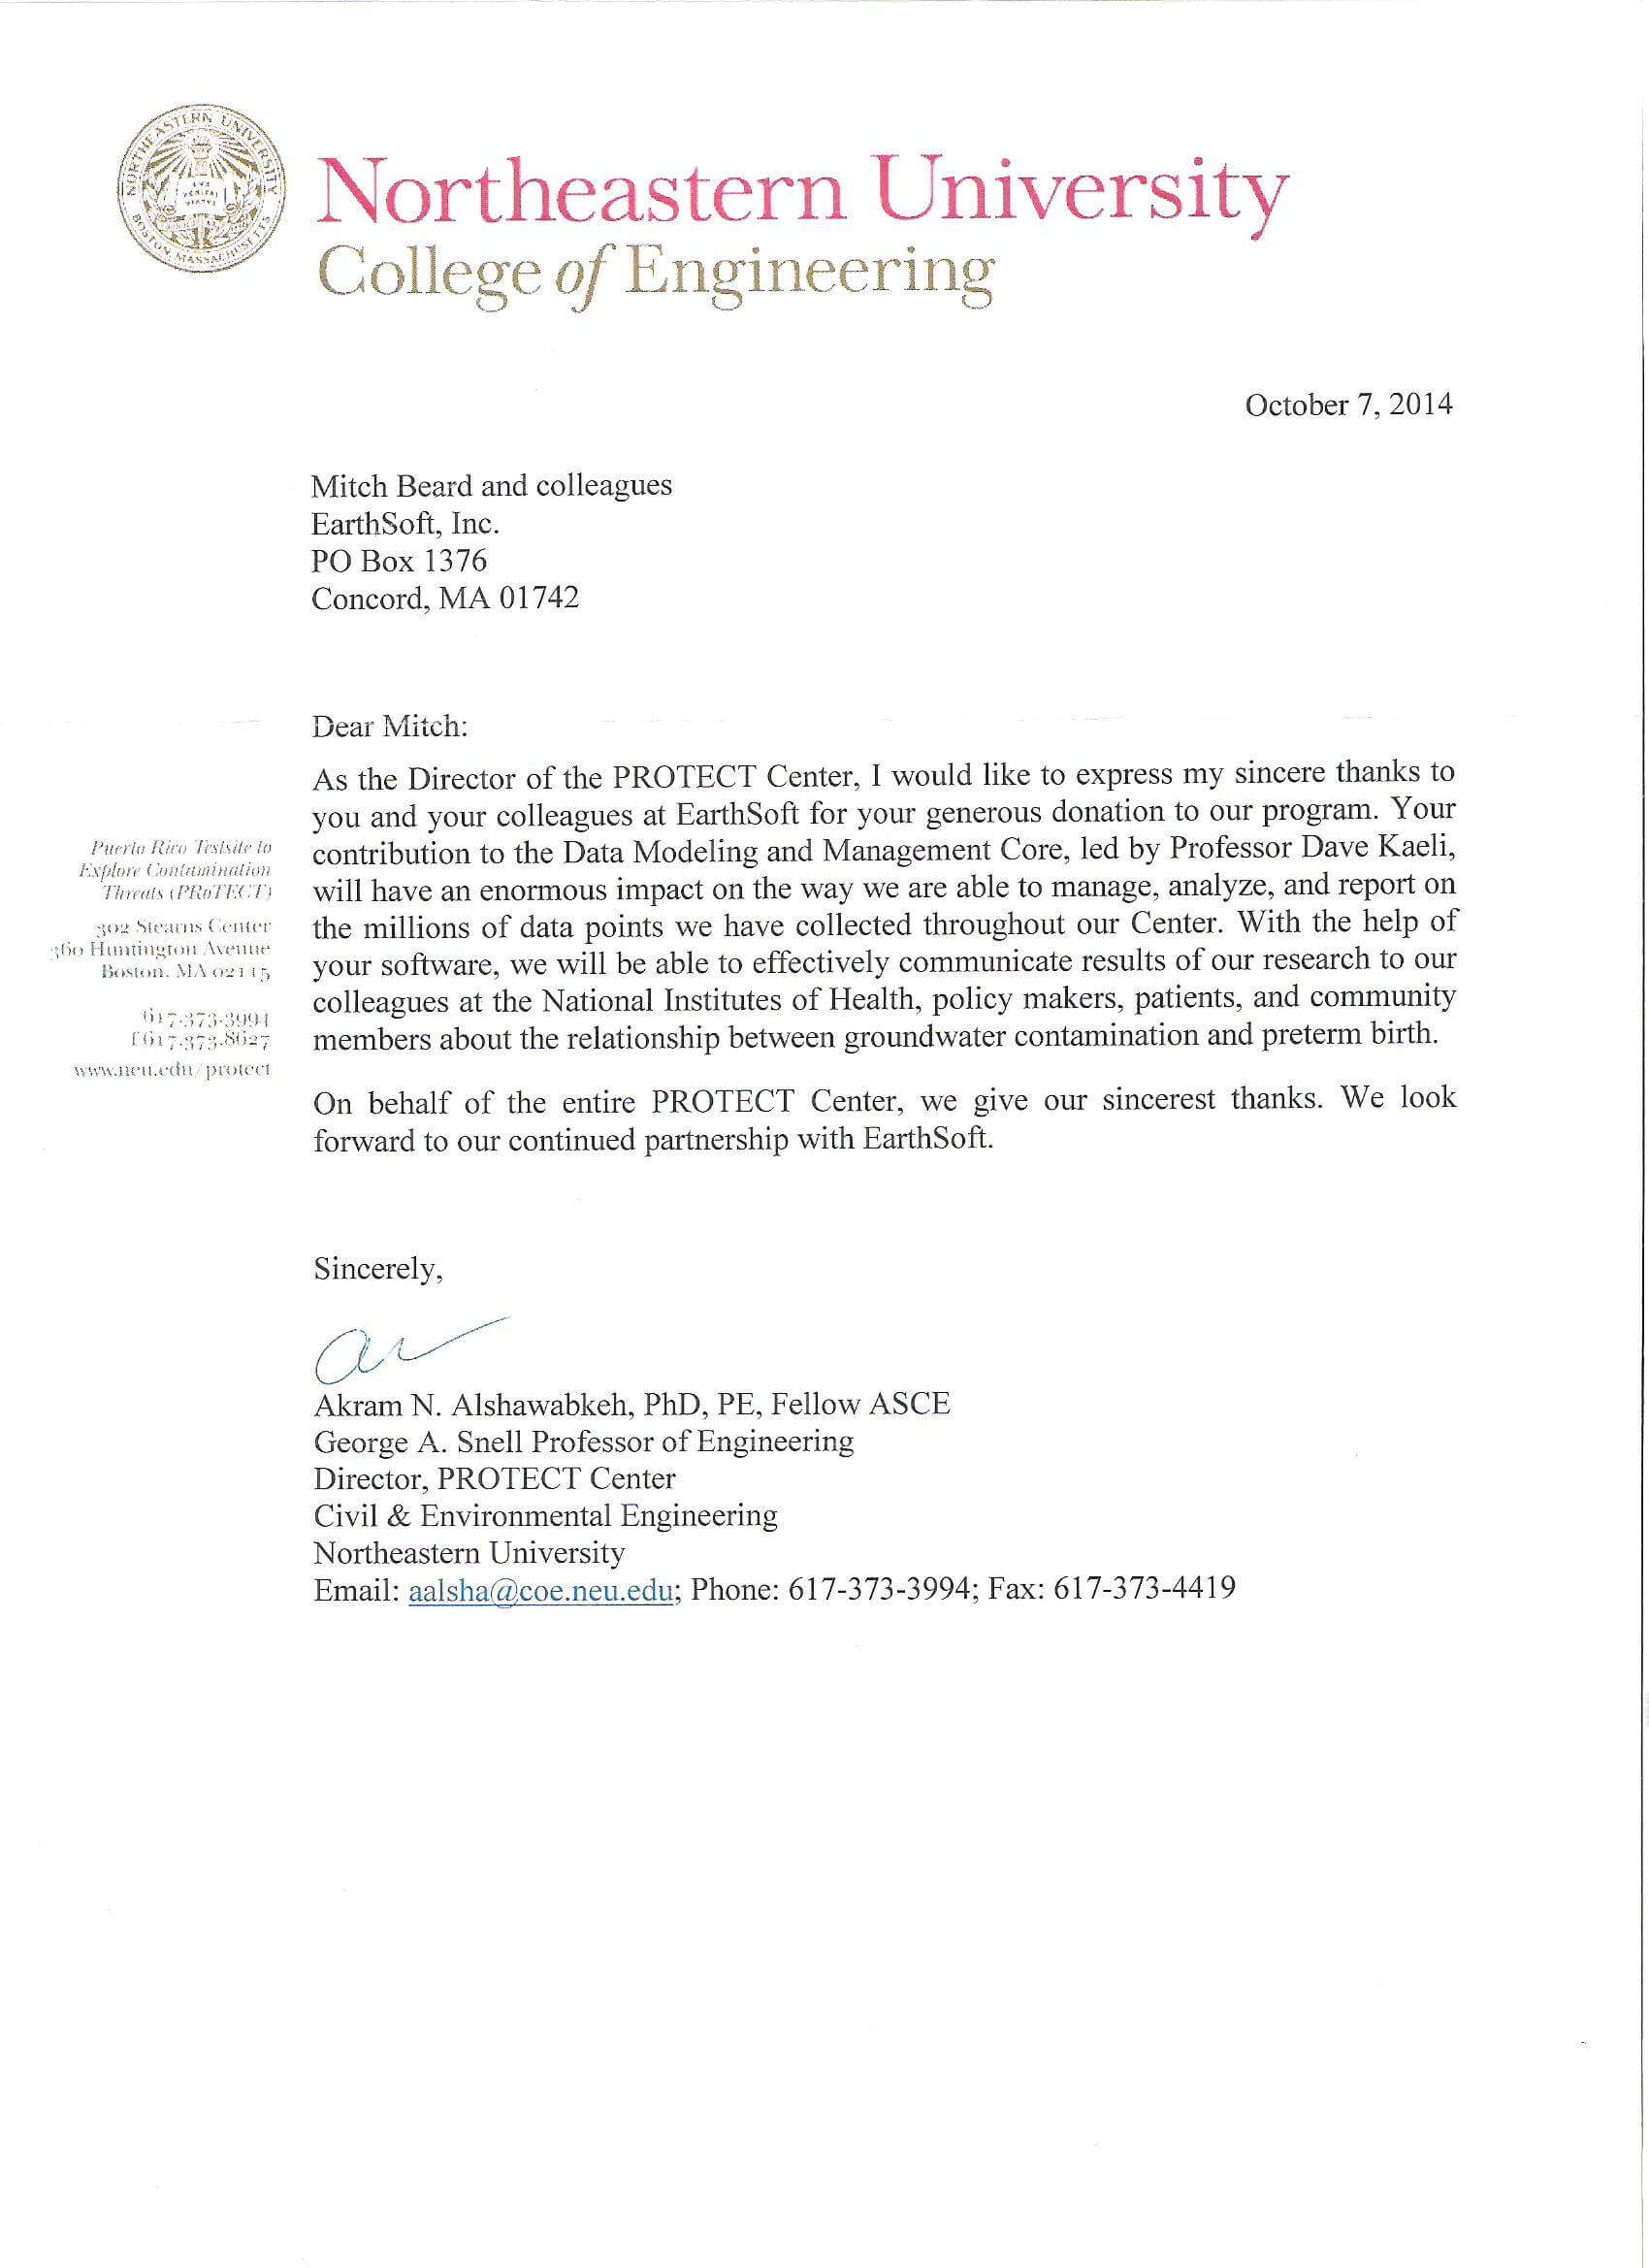 Northeastern University PROTECT Center Letter